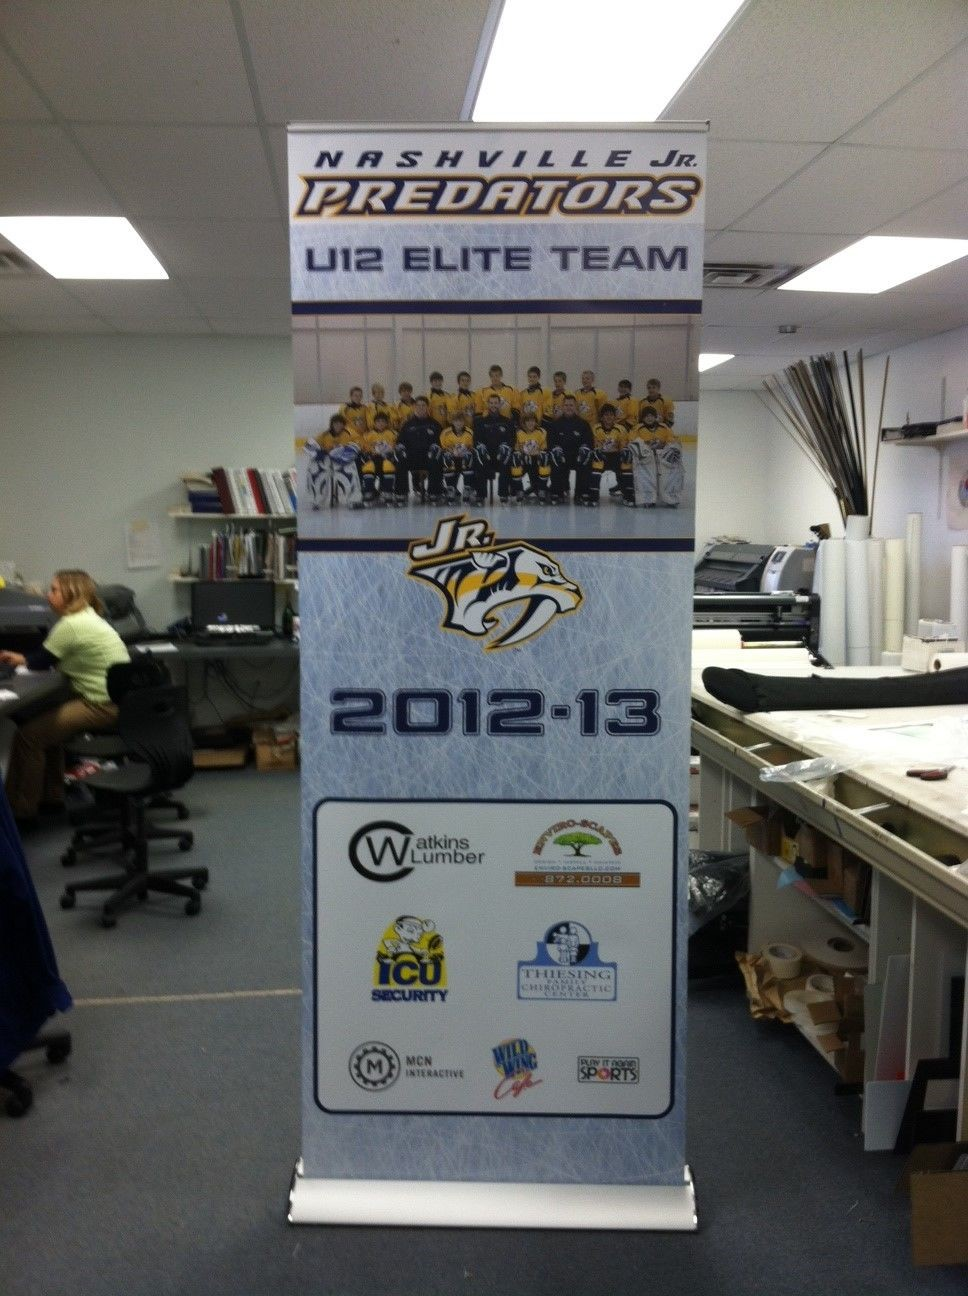 Fabric & Vinyl Indoor Banners | Convention & Exhibit Signs | Sports Venue & Stadium Signage | brentwood tn